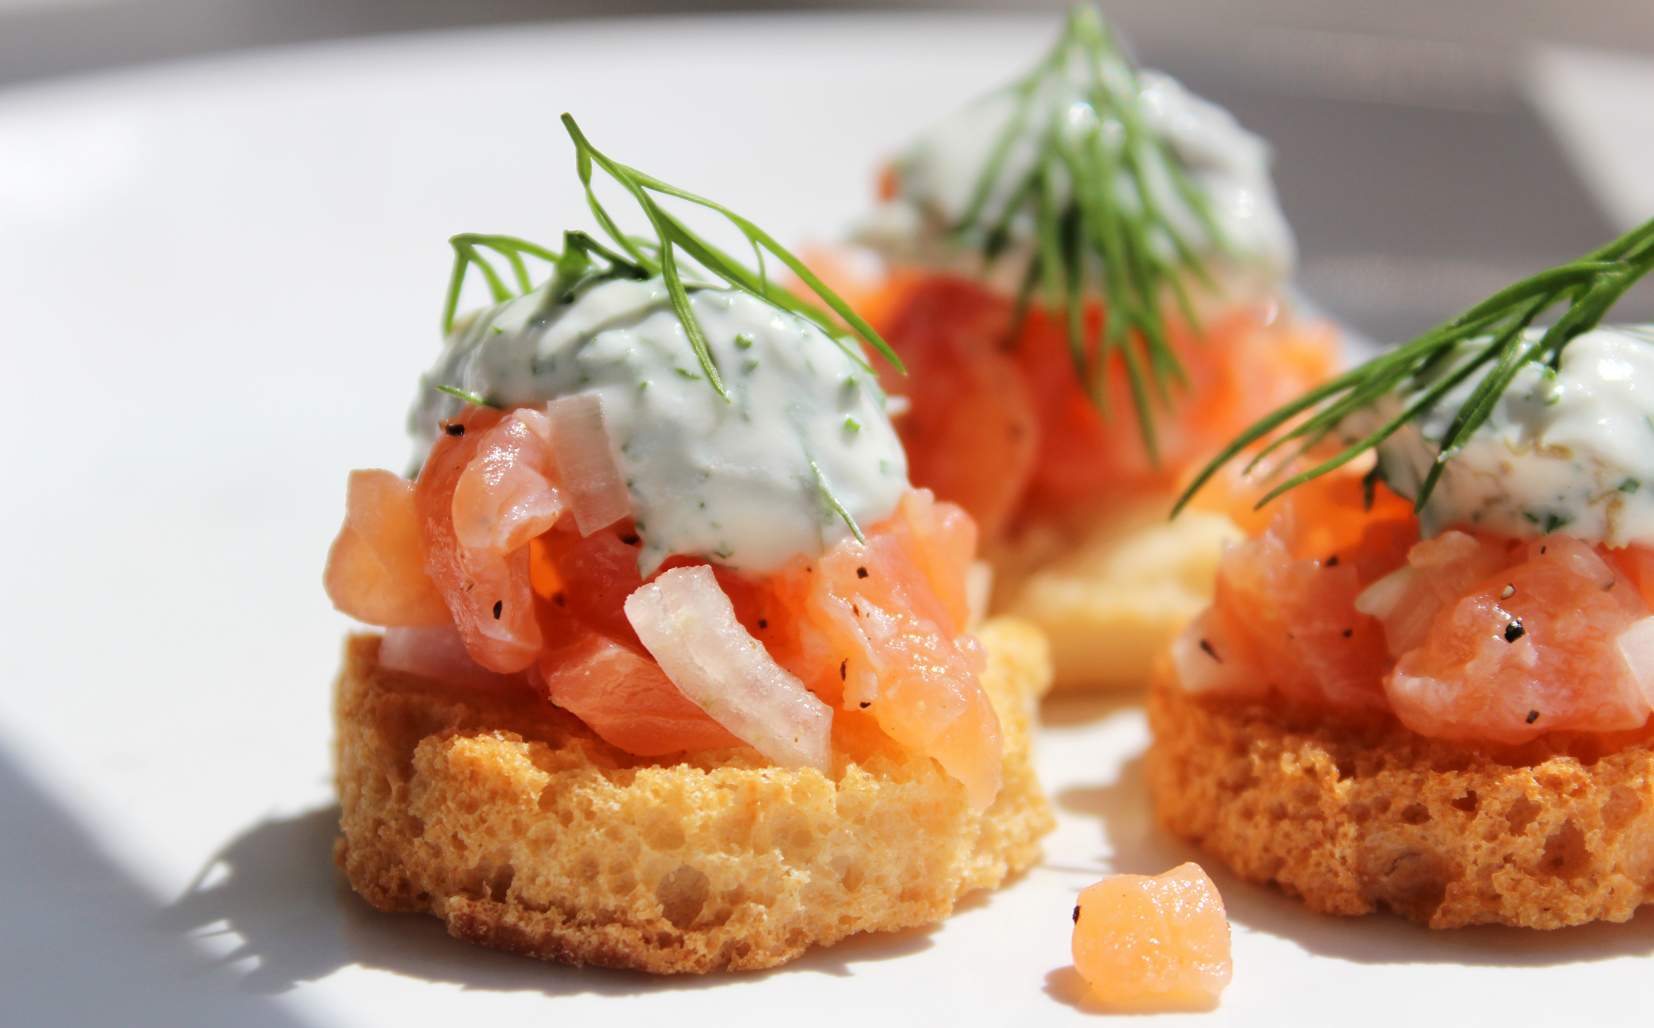 Canap s catering london event canapes london exquisite for Canape de salmon